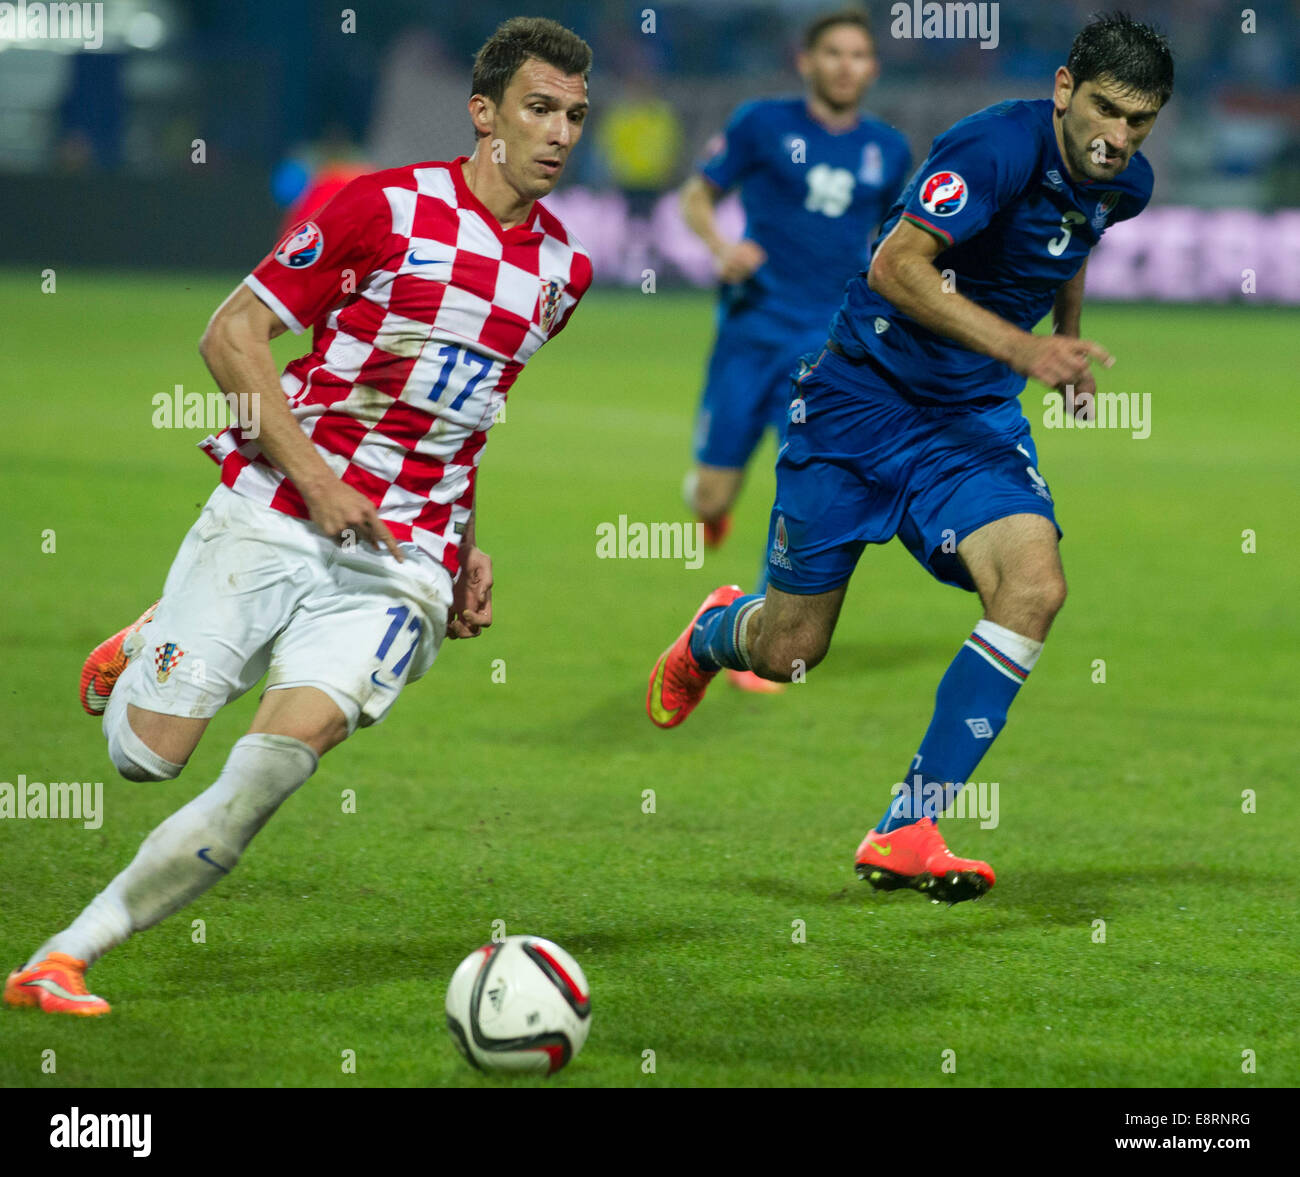 Republic Of Ireland V Azerbaijan: Vrt Stock Photos & Vrt Stock Images